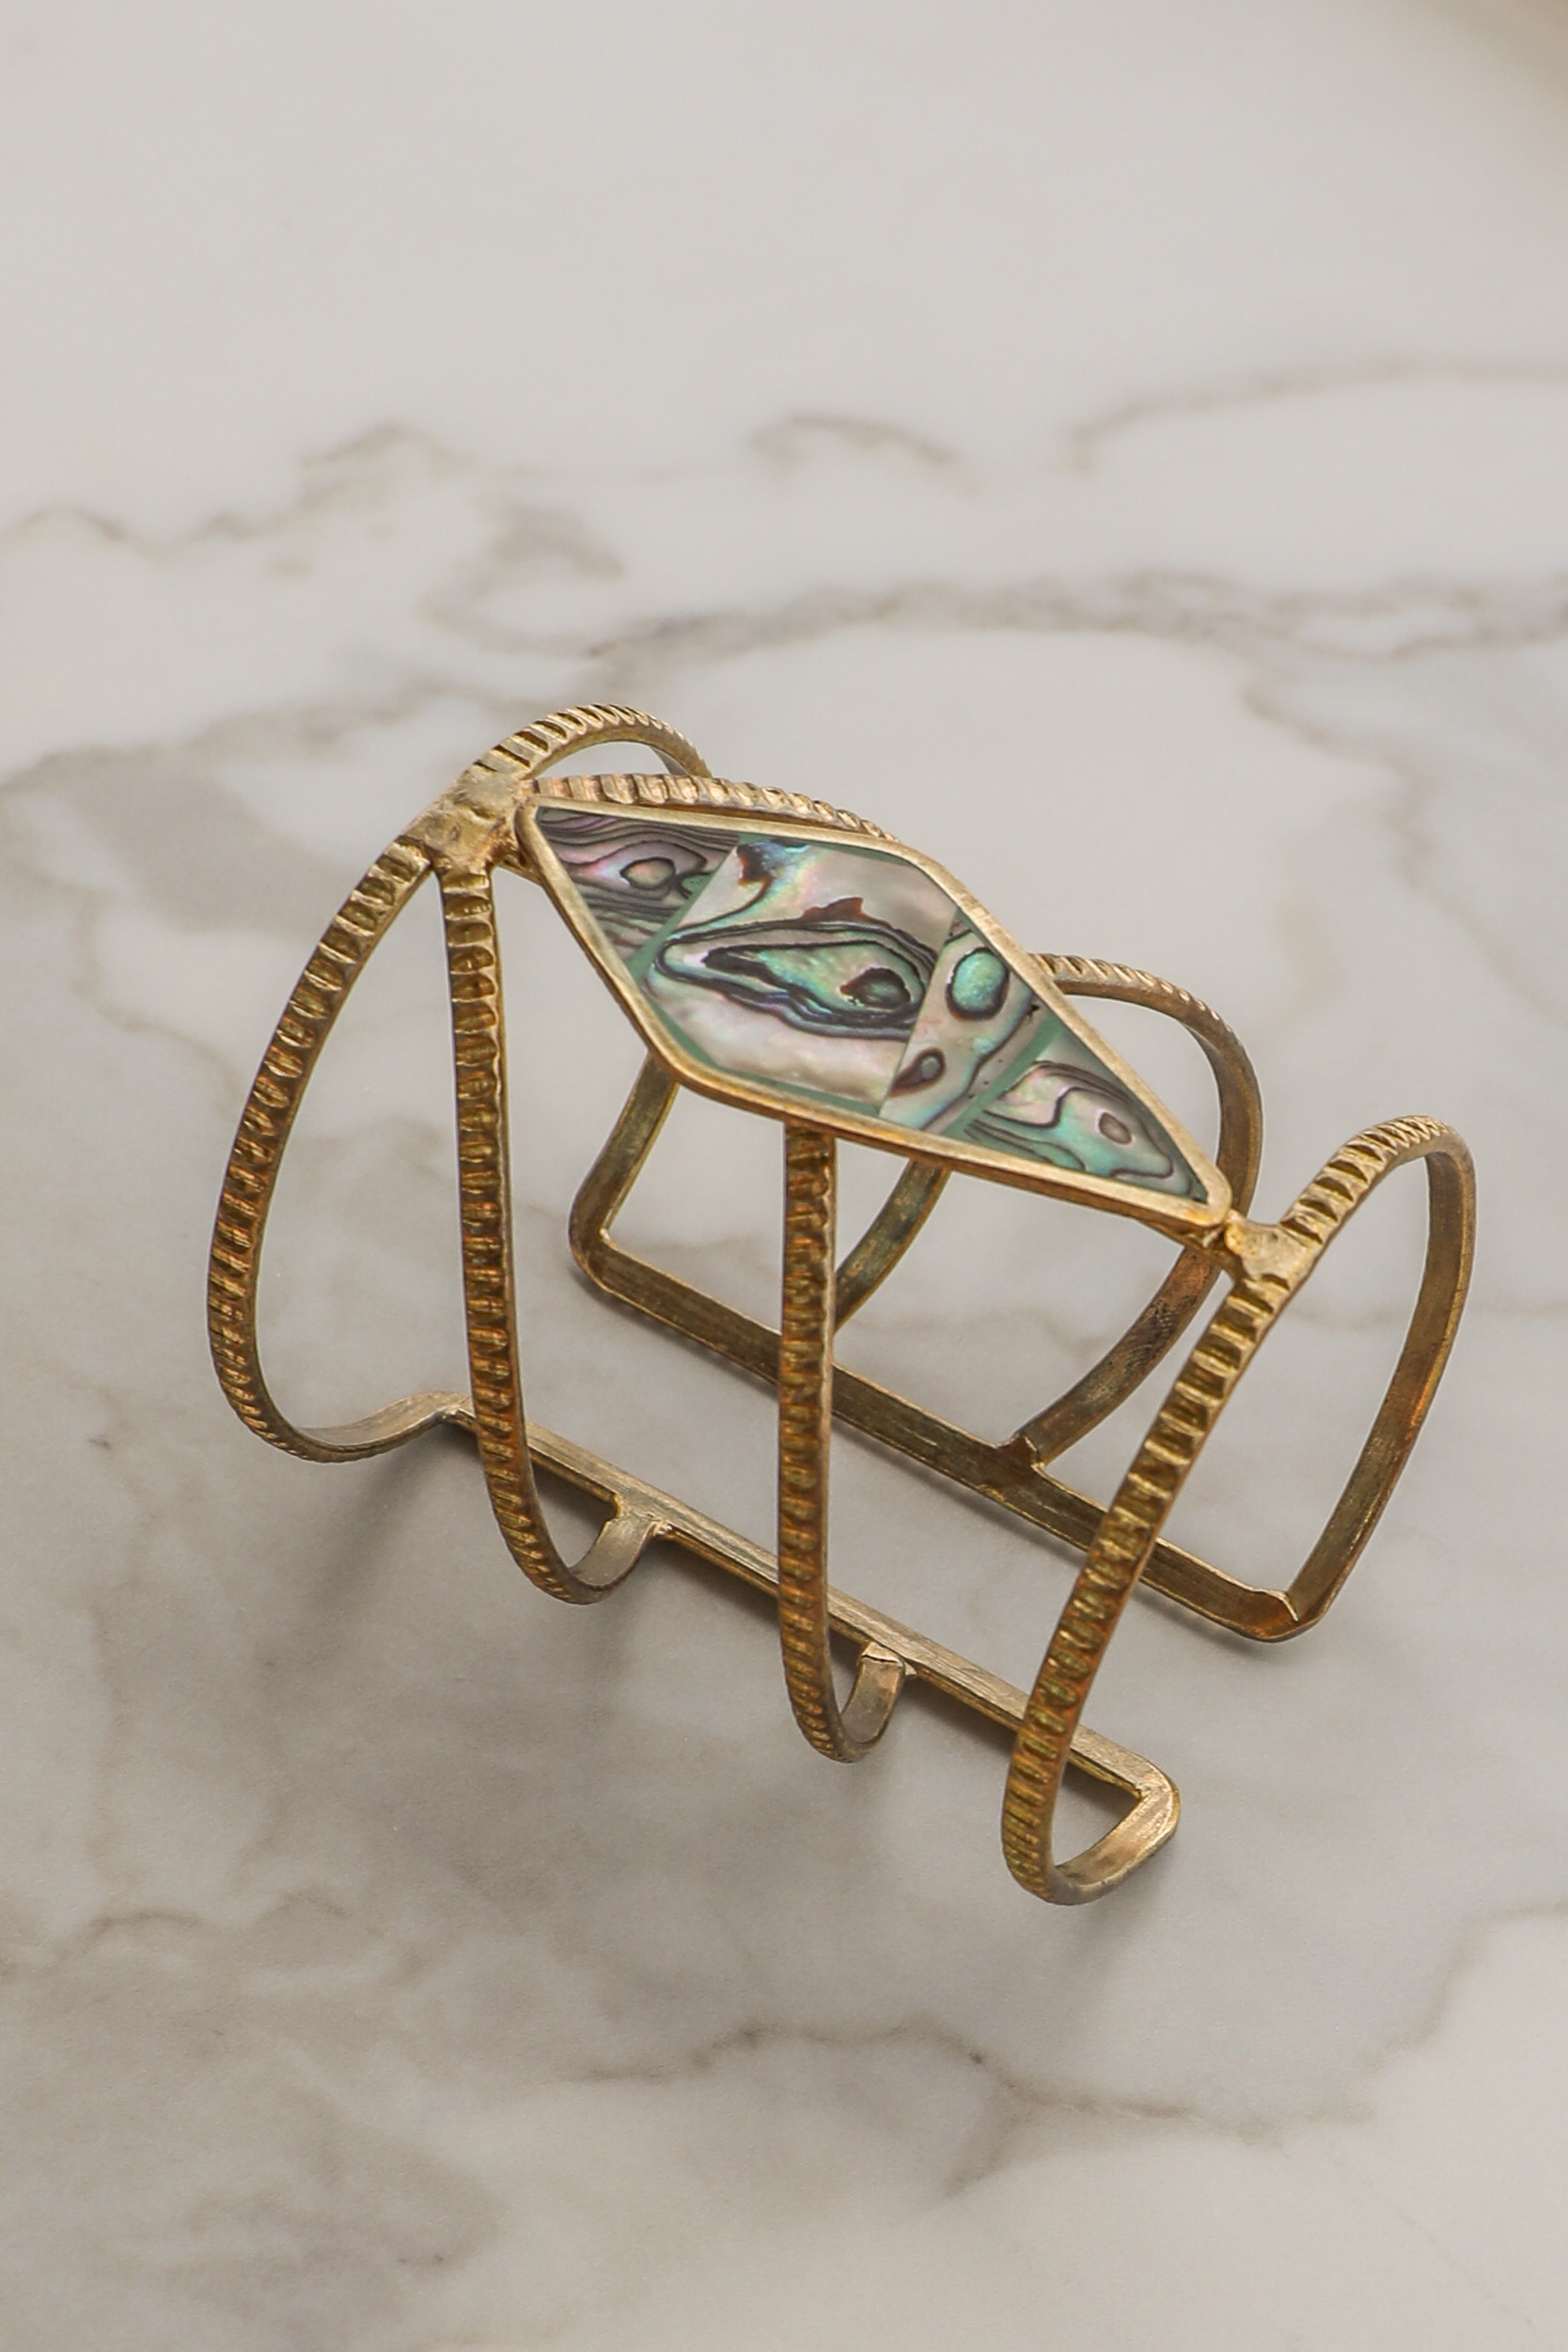 Gold Cuff Bracelet with Diamond Shaped Gemstone Detail